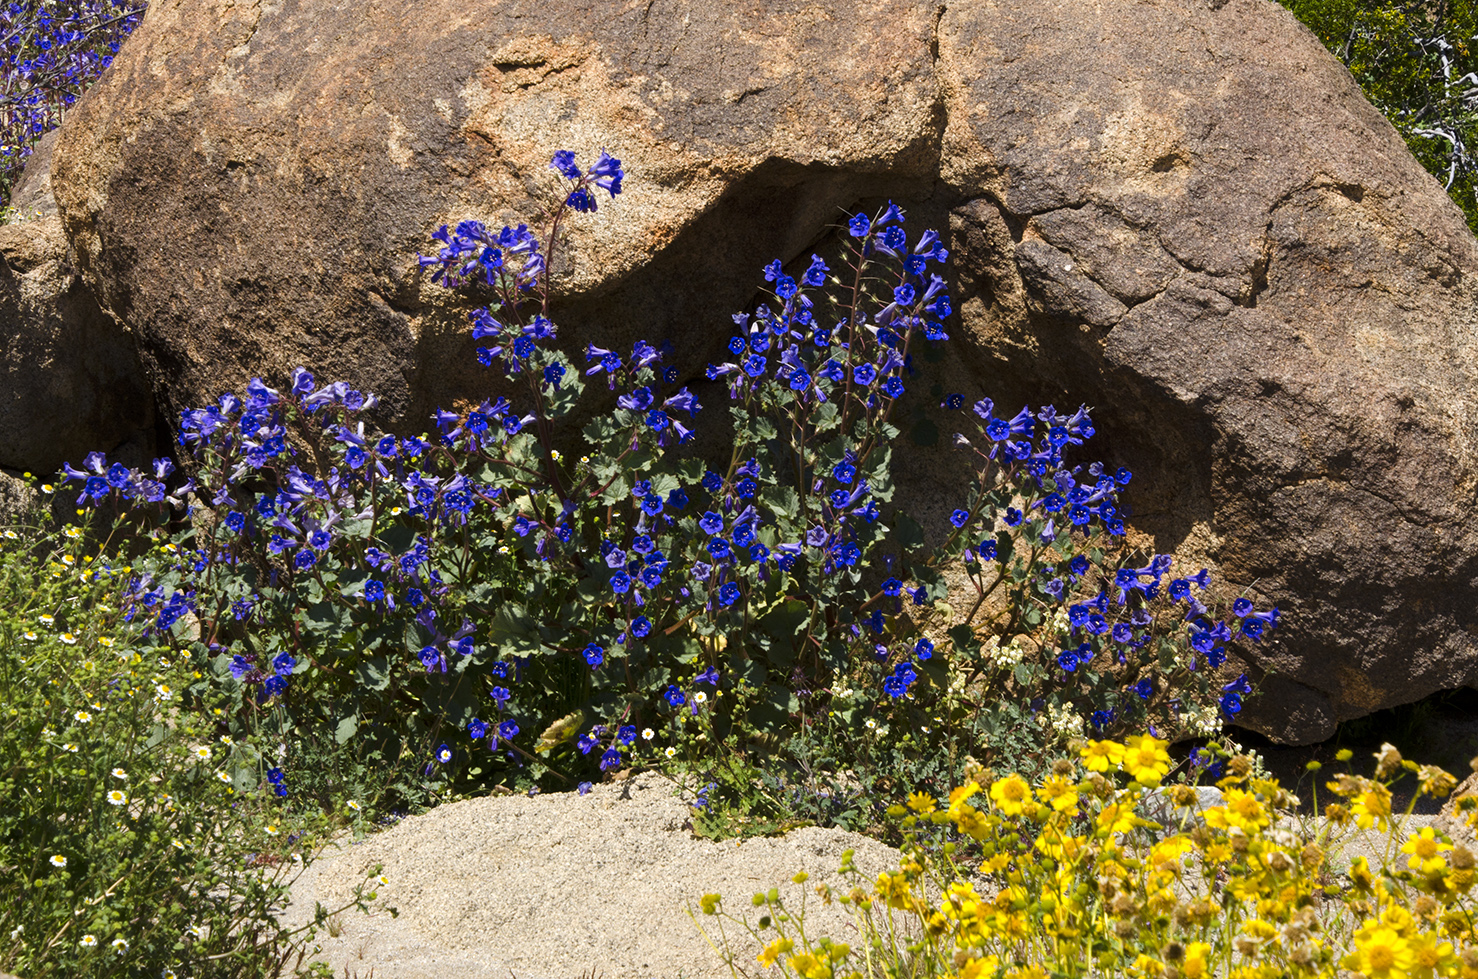 Joshua Tree National Park Wildflowers 22.jpg